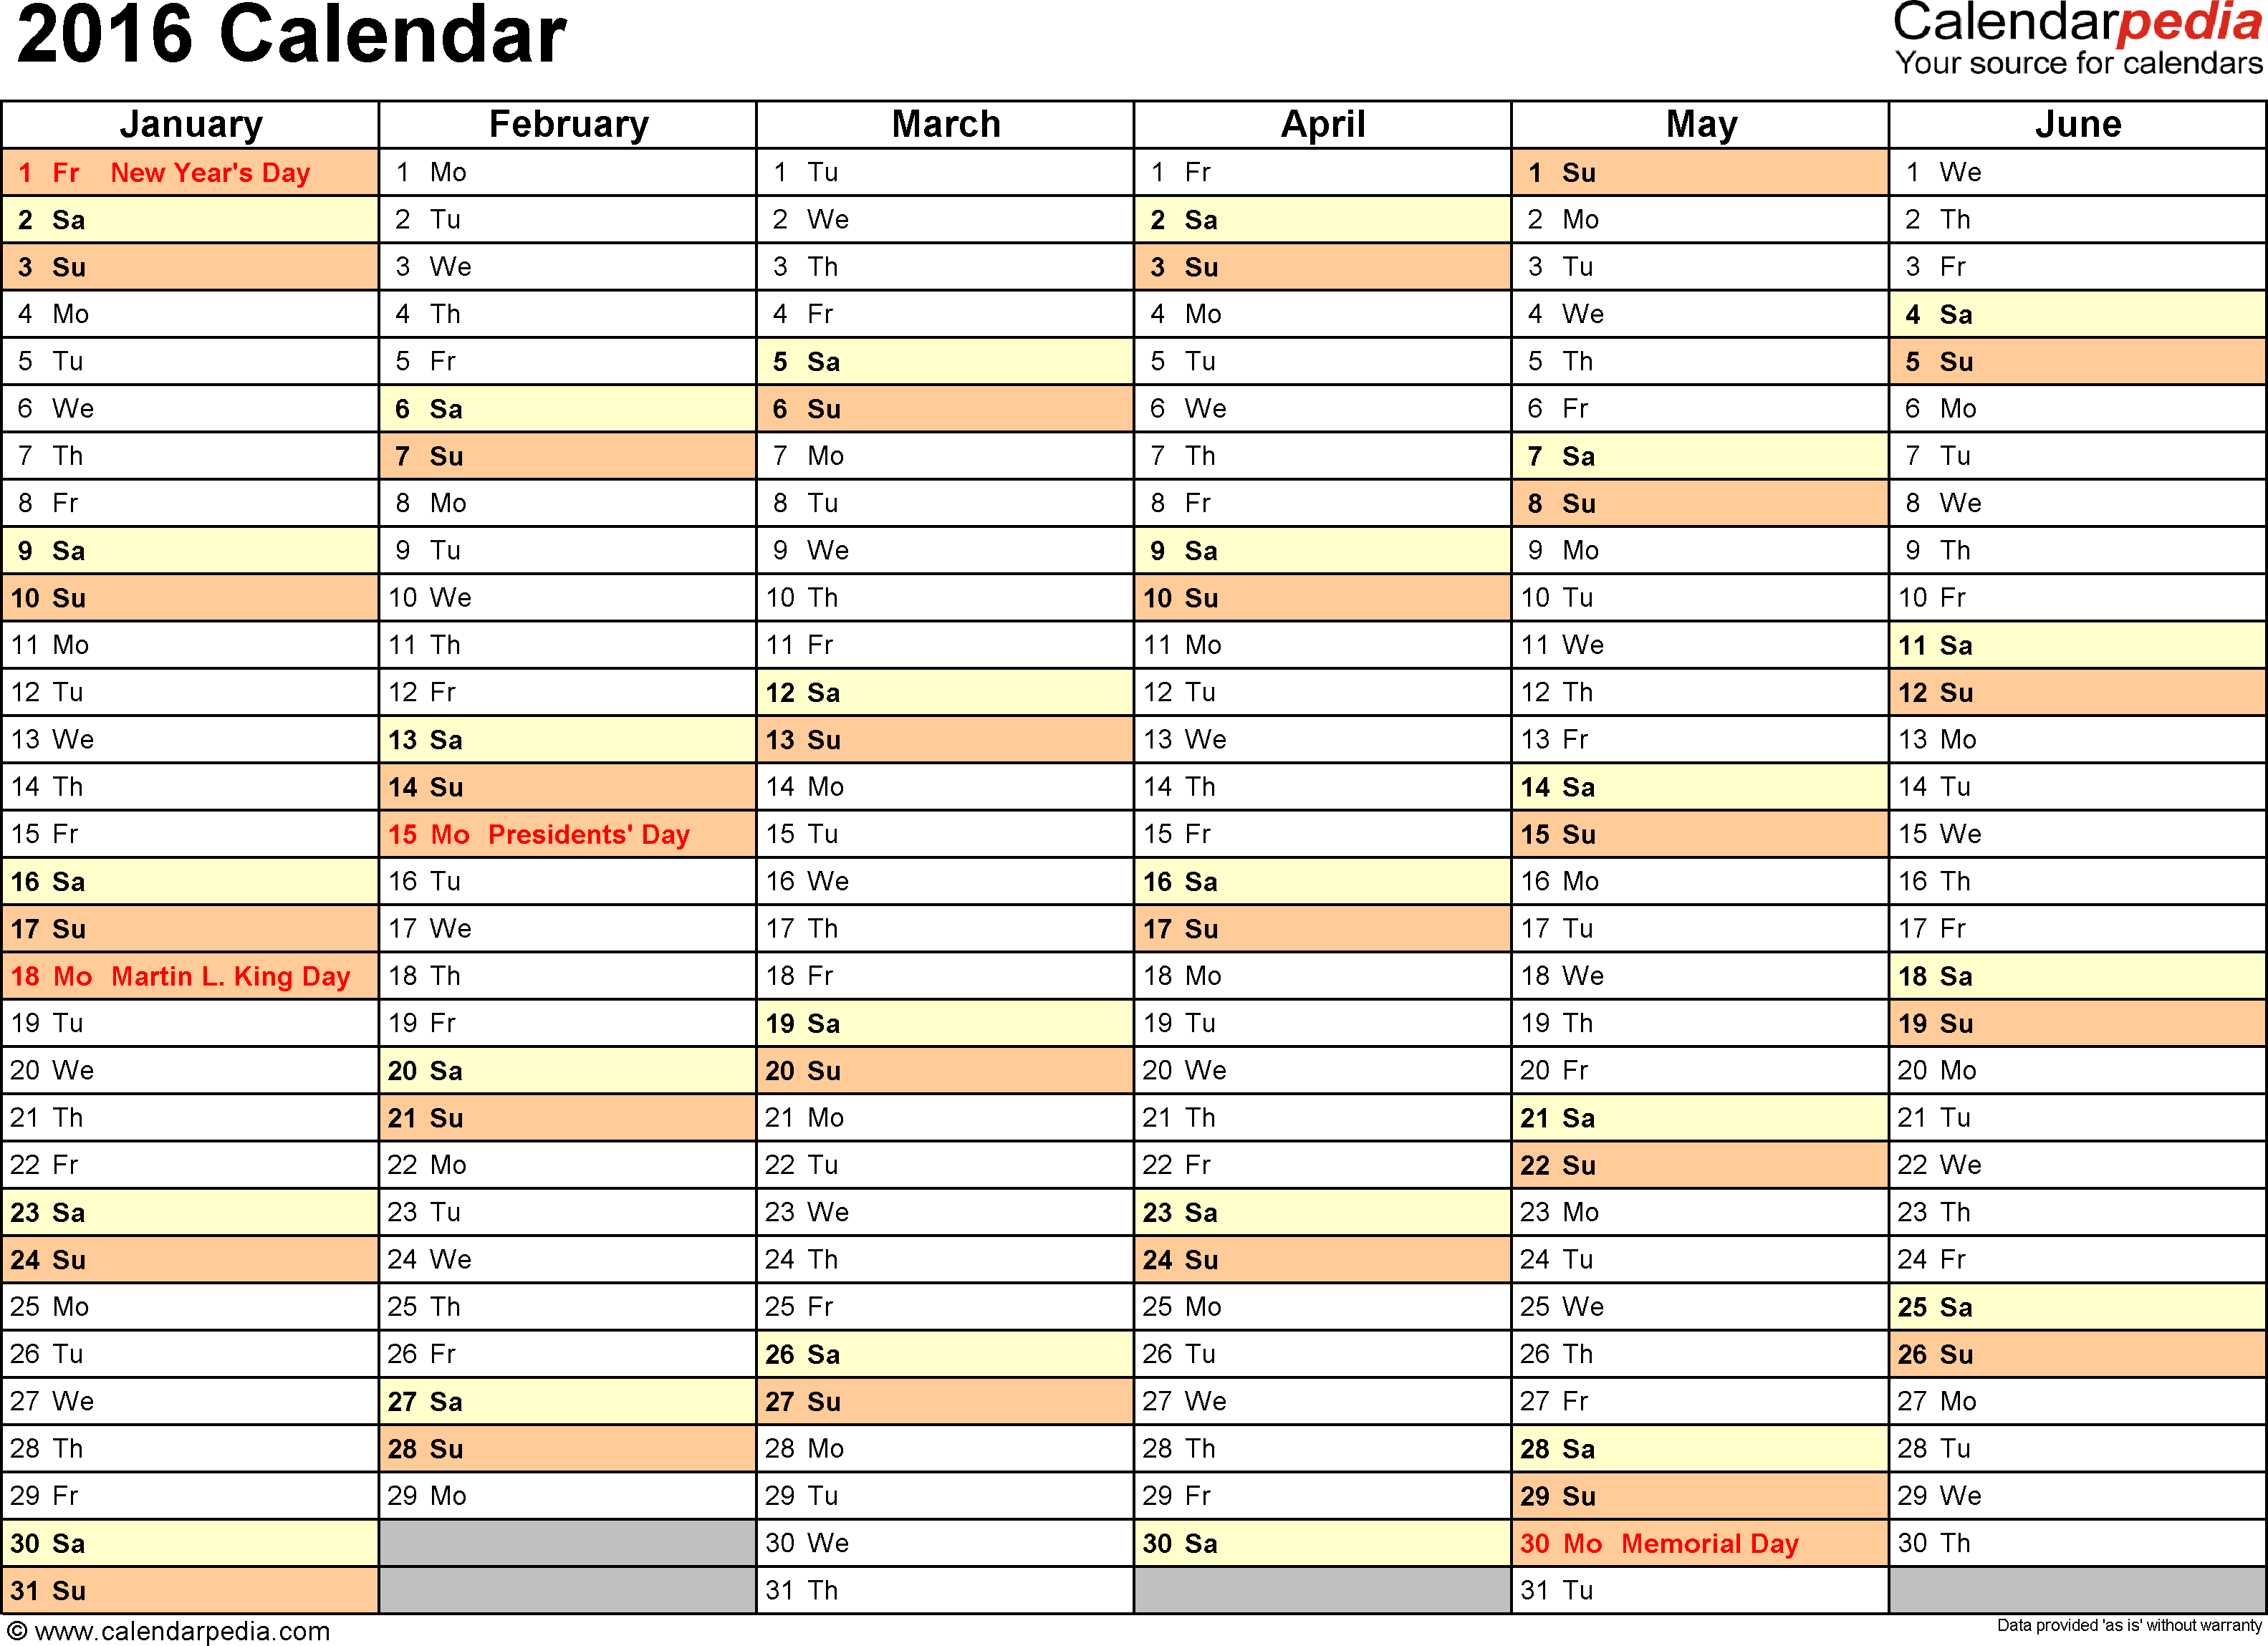 Ediblewildsus  Seductive  Calendar  Download  Free Printable Excel Templates Xls With Likable Template   Calendar For Excel Months Horizontally  Pages Landscape Orientation With Nice Testing Excel Skills Job Interview Also Weighted Mean Excel In Addition Excel Complex Numbers And Networkdays Excel  As Well As Named Range In Excel Additionally Forgot Password To Excel File From Calendarpediacom With Ediblewildsus  Likable  Calendar  Download  Free Printable Excel Templates Xls With Nice Template   Calendar For Excel Months Horizontally  Pages Landscape Orientation And Seductive Testing Excel Skills Job Interview Also Weighted Mean Excel In Addition Excel Complex Numbers From Calendarpediacom